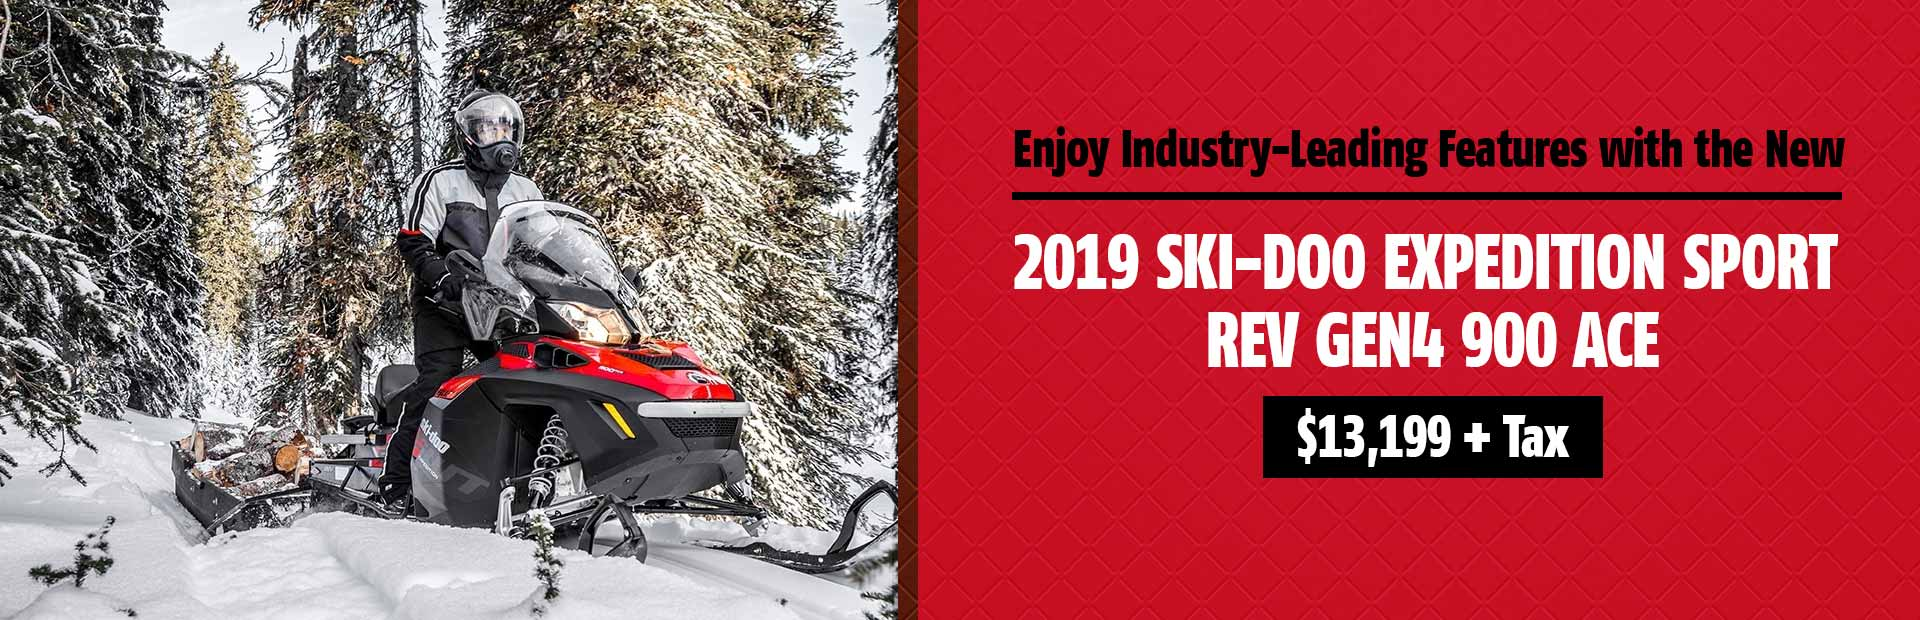 Get the 2019 Ski-Doo Expedition Sport REV Gen4 900 ACE for $13,199 + tax!